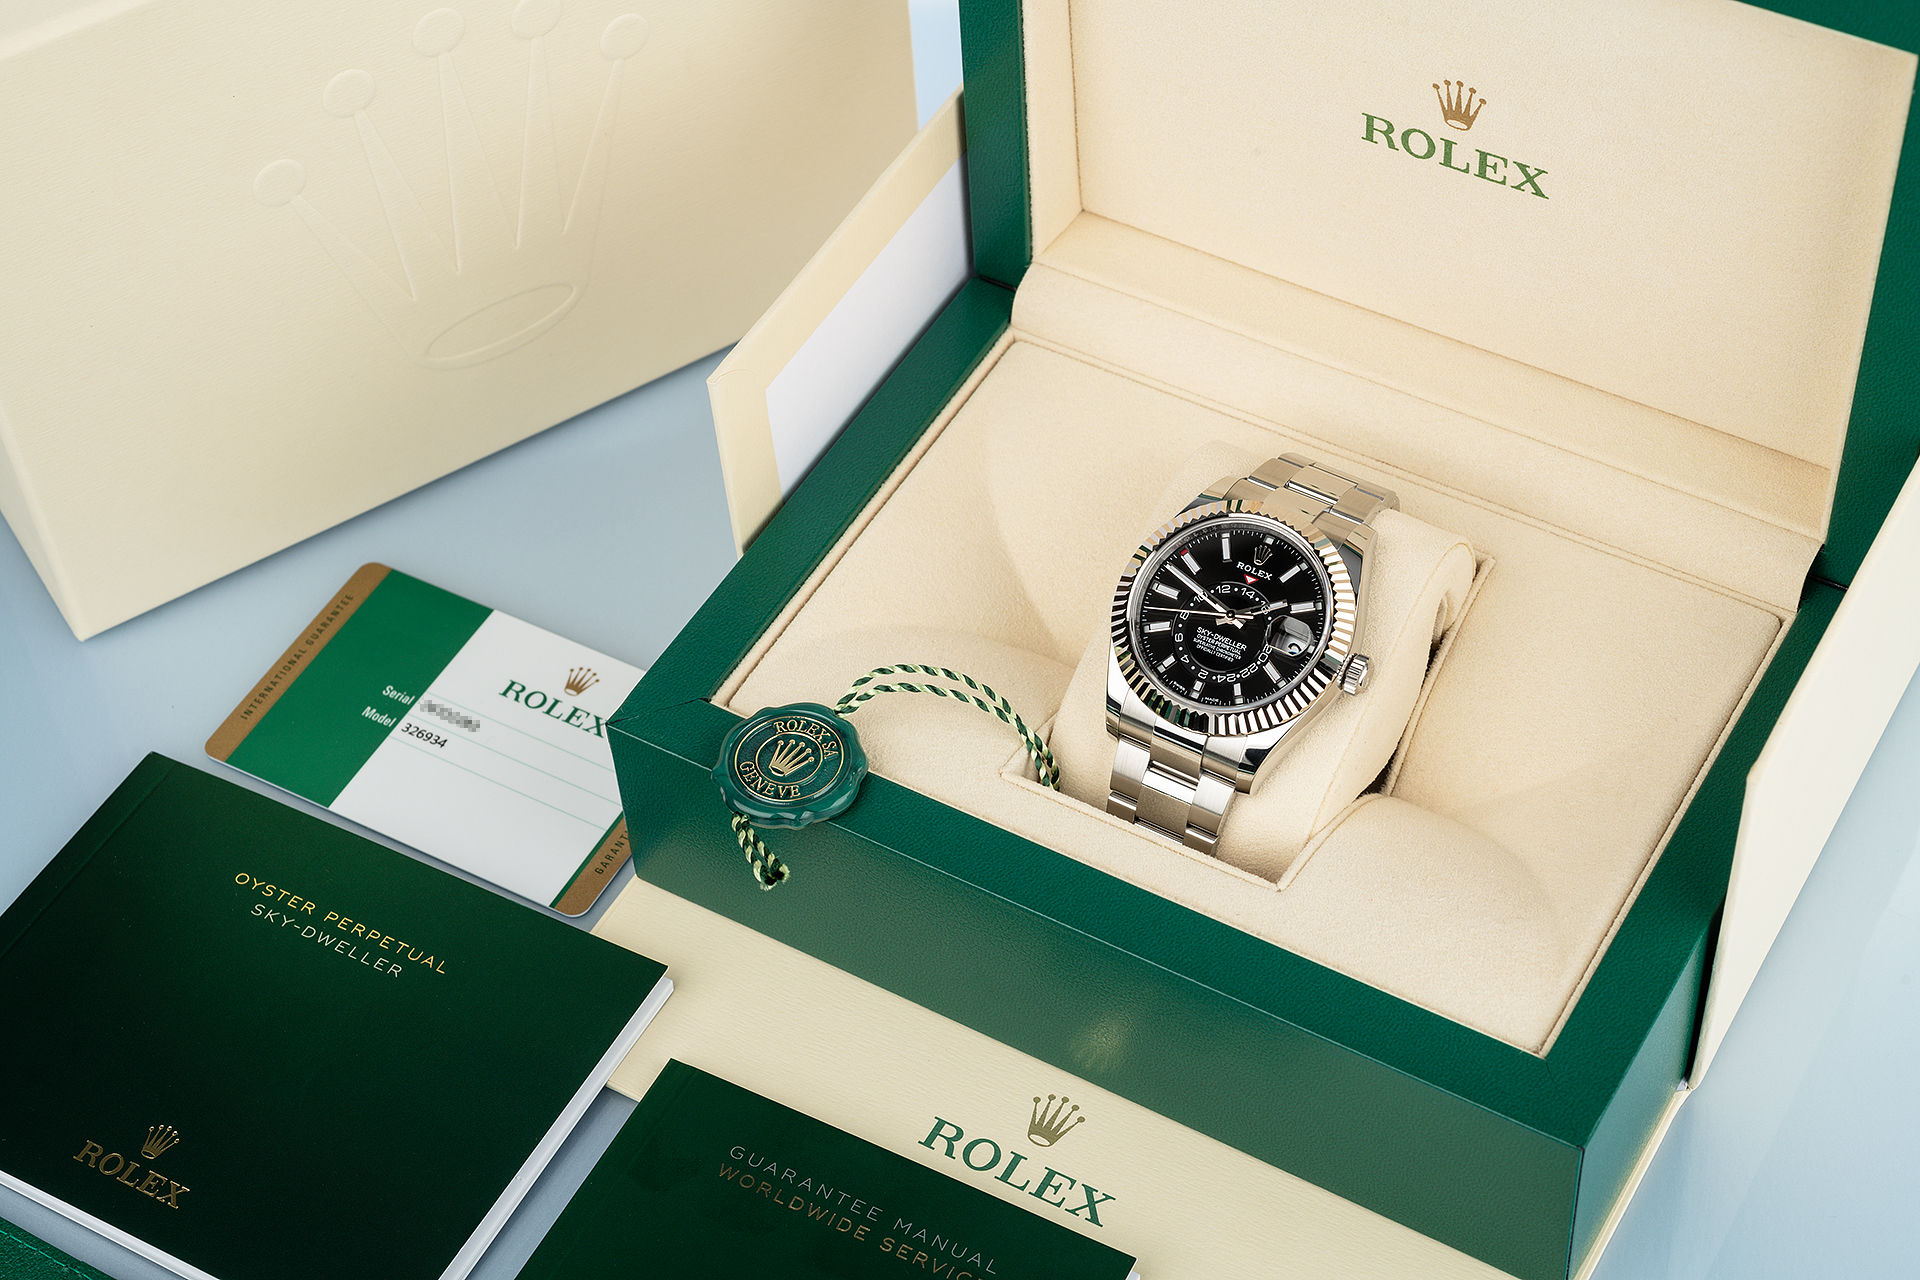 ref 326934 | 'Brand New' - 5 Year Warranty  | Rolex Sky Dweller